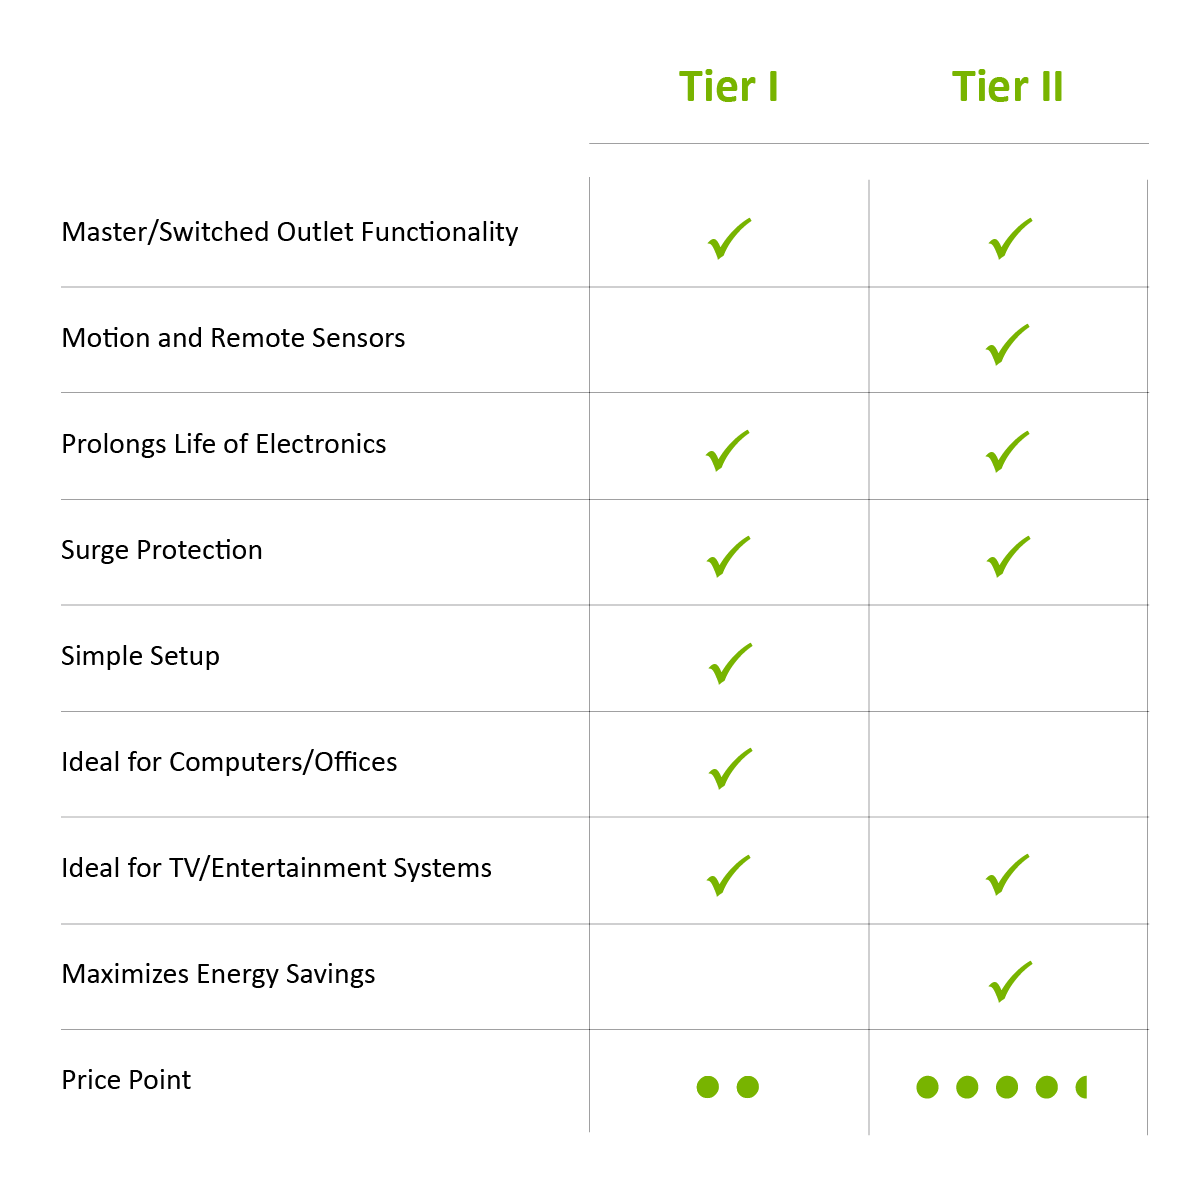 How to choose an advanced power strip. Chart comparing Tier I and Tier II advanced power strips, or smart power strips.